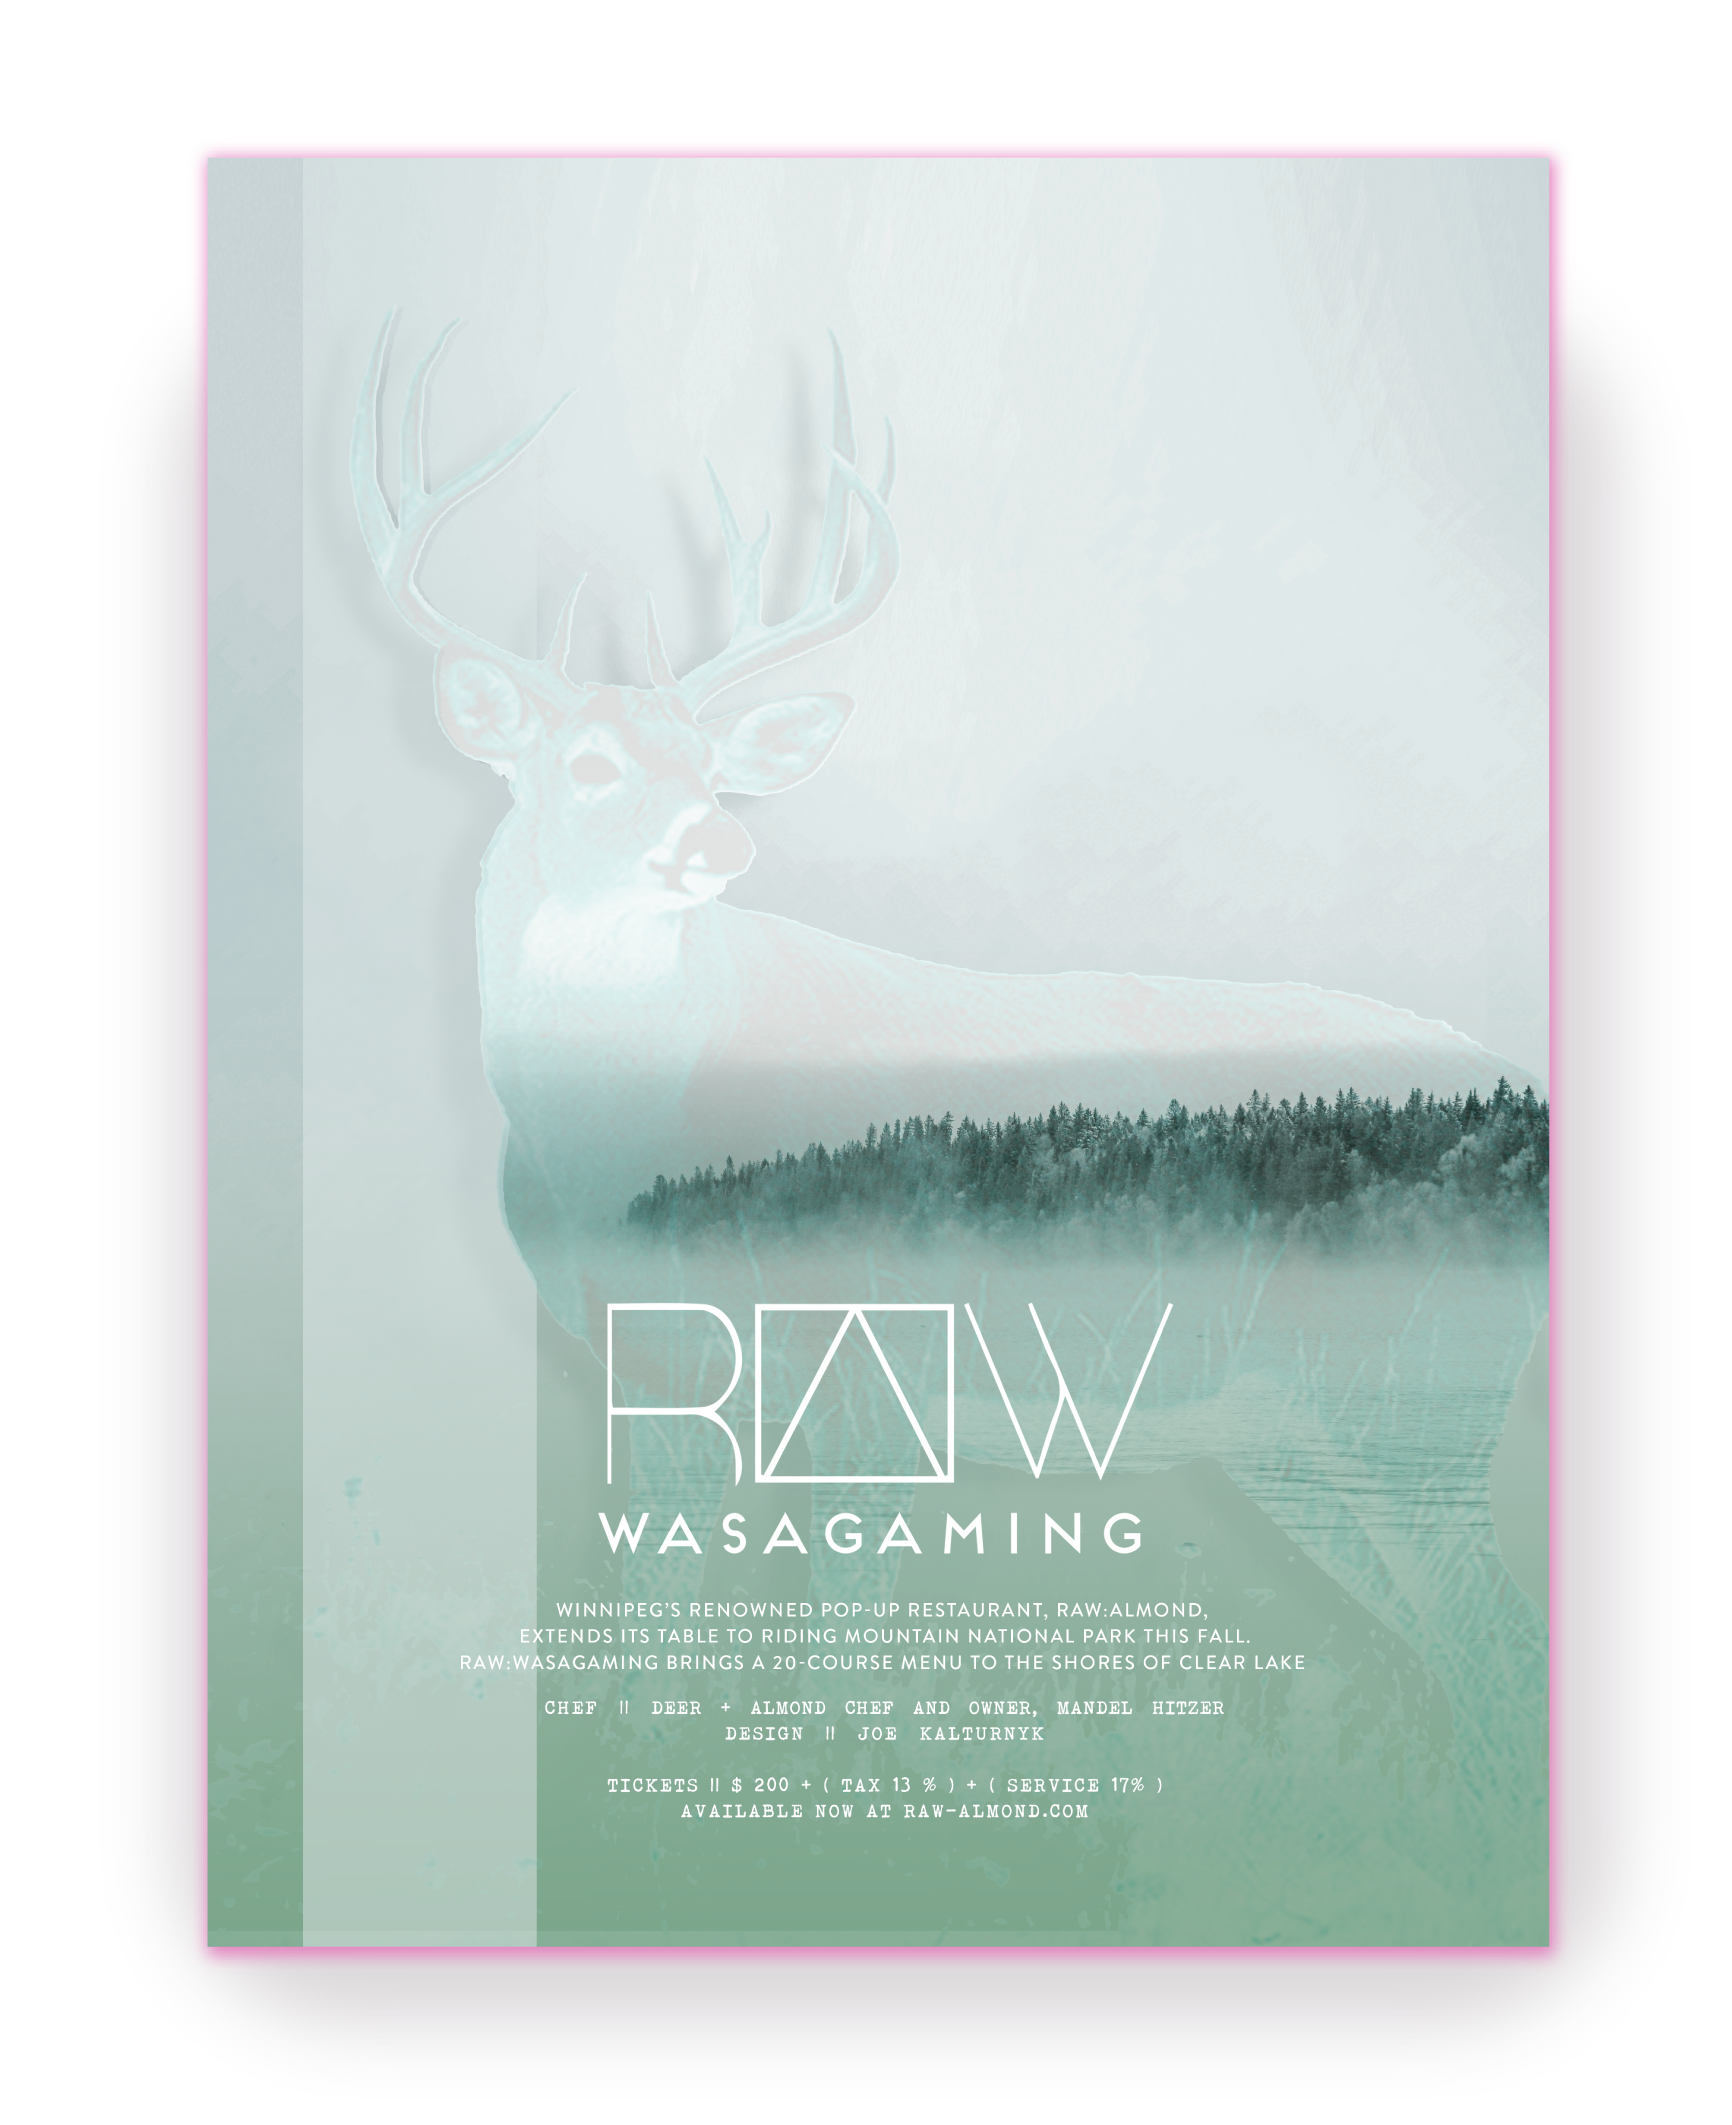 Raw Wasagaming Proposed Concept